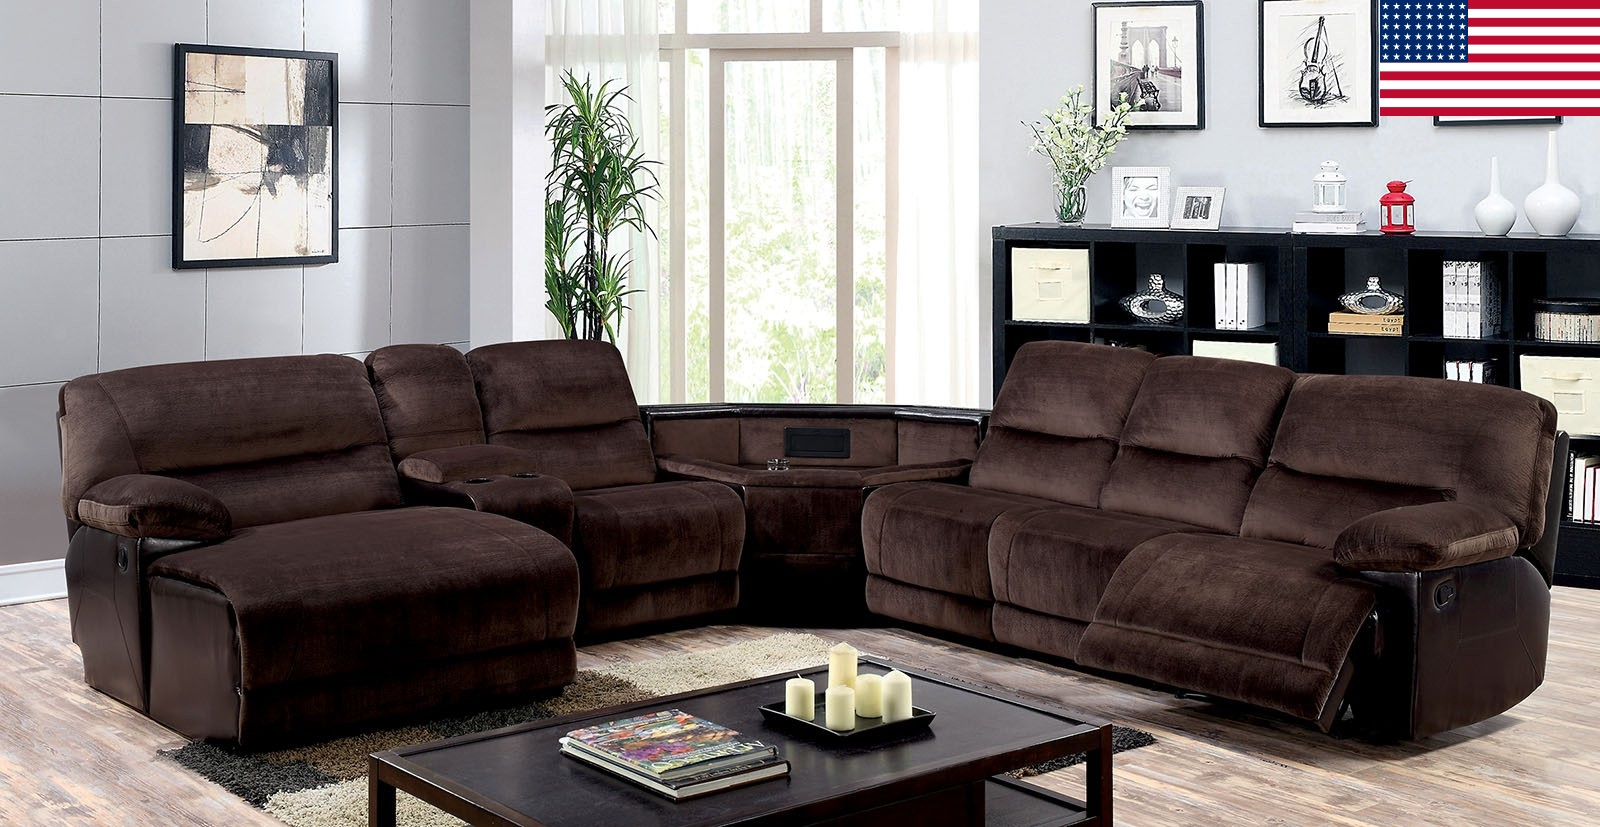 Recliner sectional brown console chaise foa cm6822 t for Brown sectional with chaise